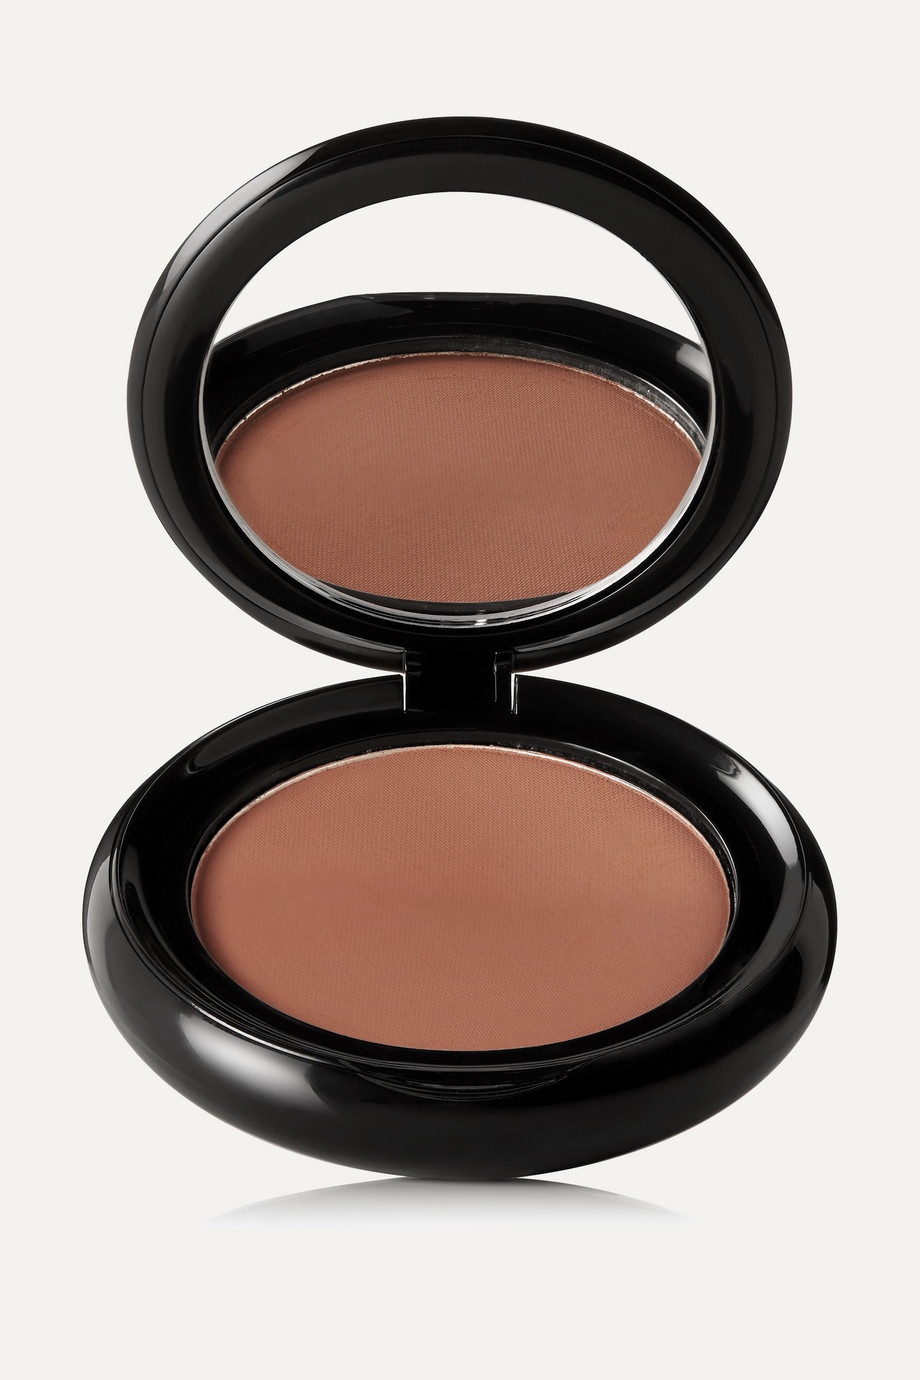 Marc Jacobs Beauty O!mega Shadow Gel Powder Eyeshadow - The Big O! 520